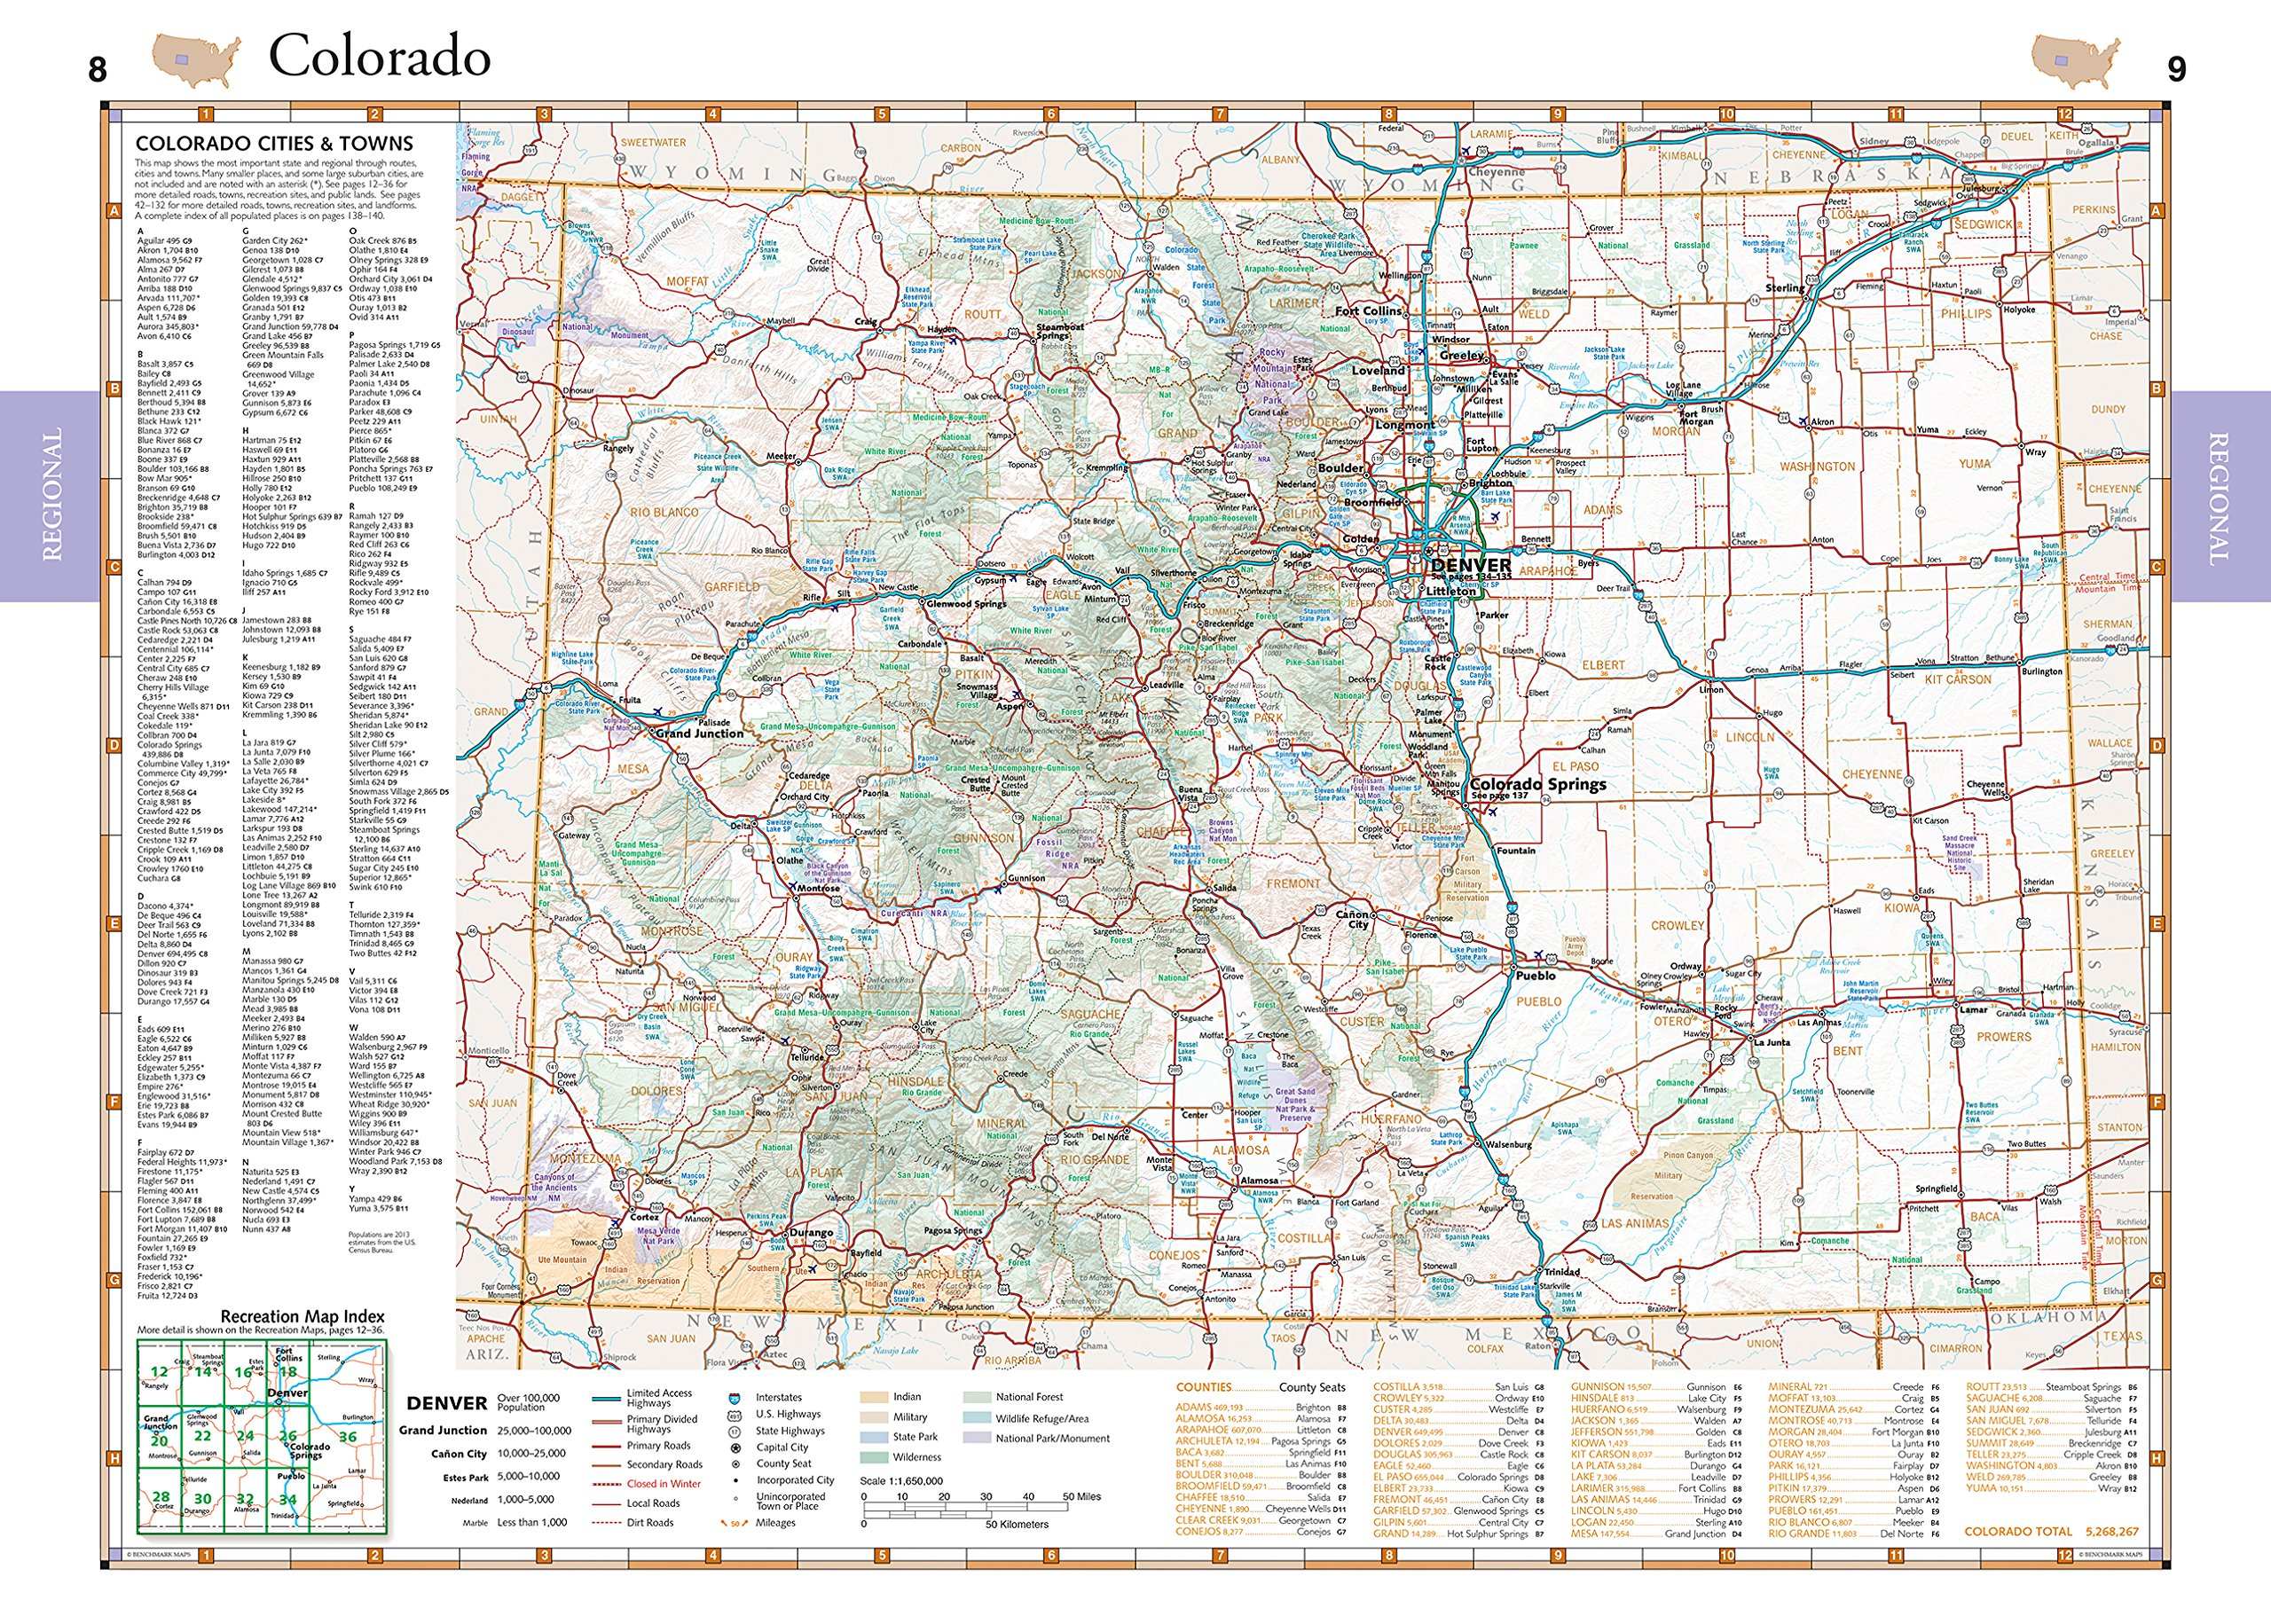 Colorado Benchmark Road Recreation Atlas Benchmark Maps - Maps of colorado cities